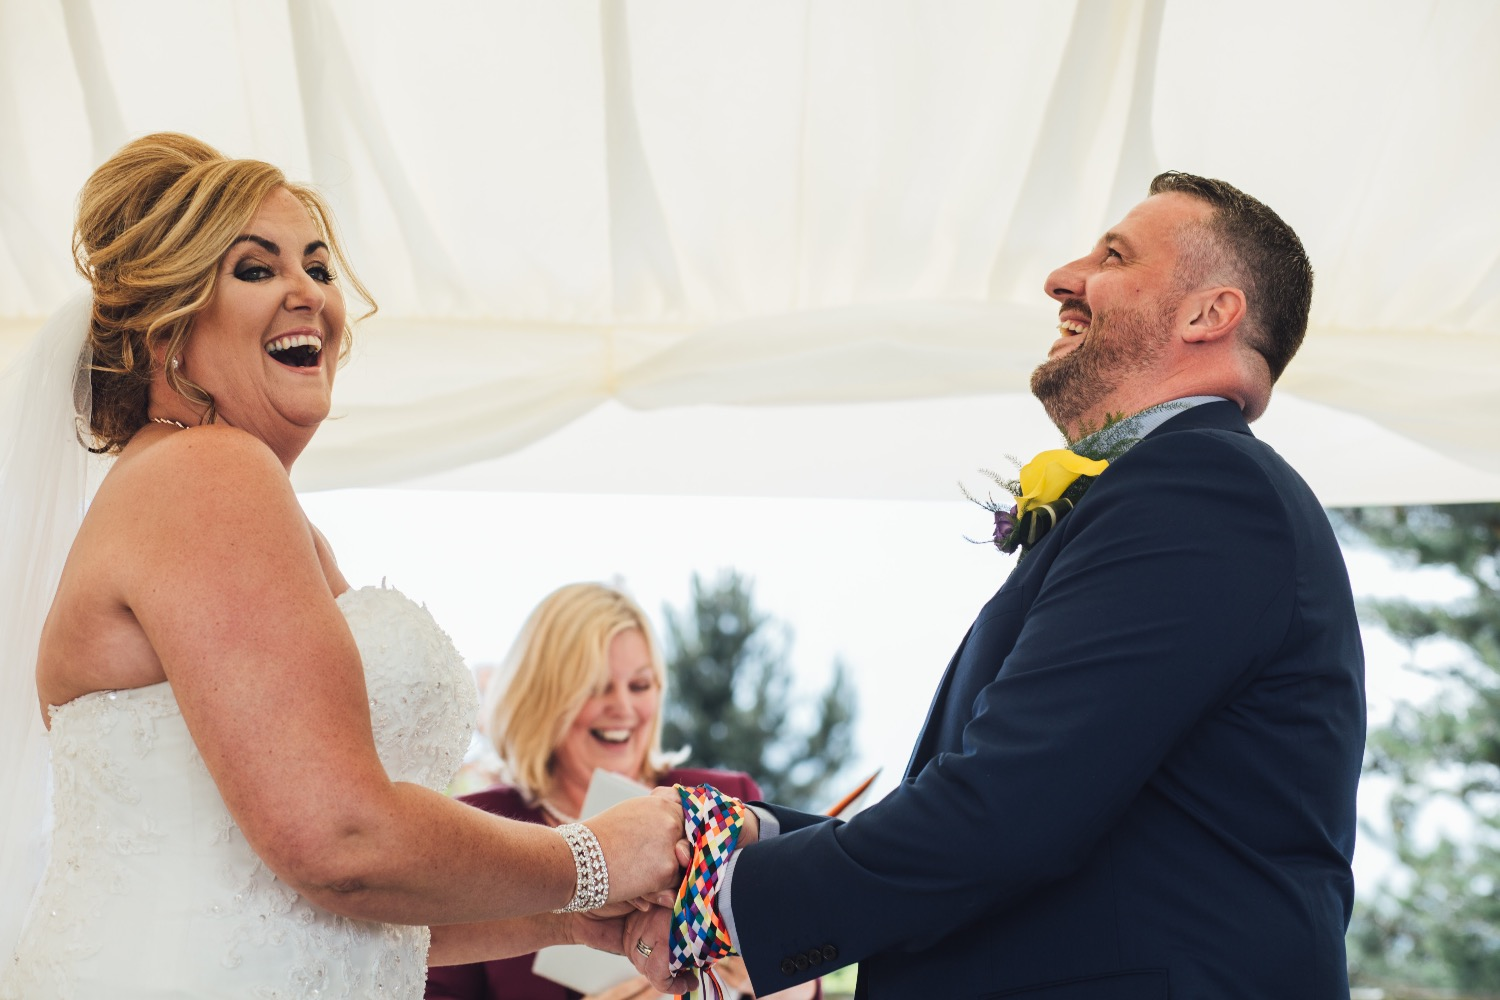 Lancashire Fun Wedding Celebrant, Lorraine Hull